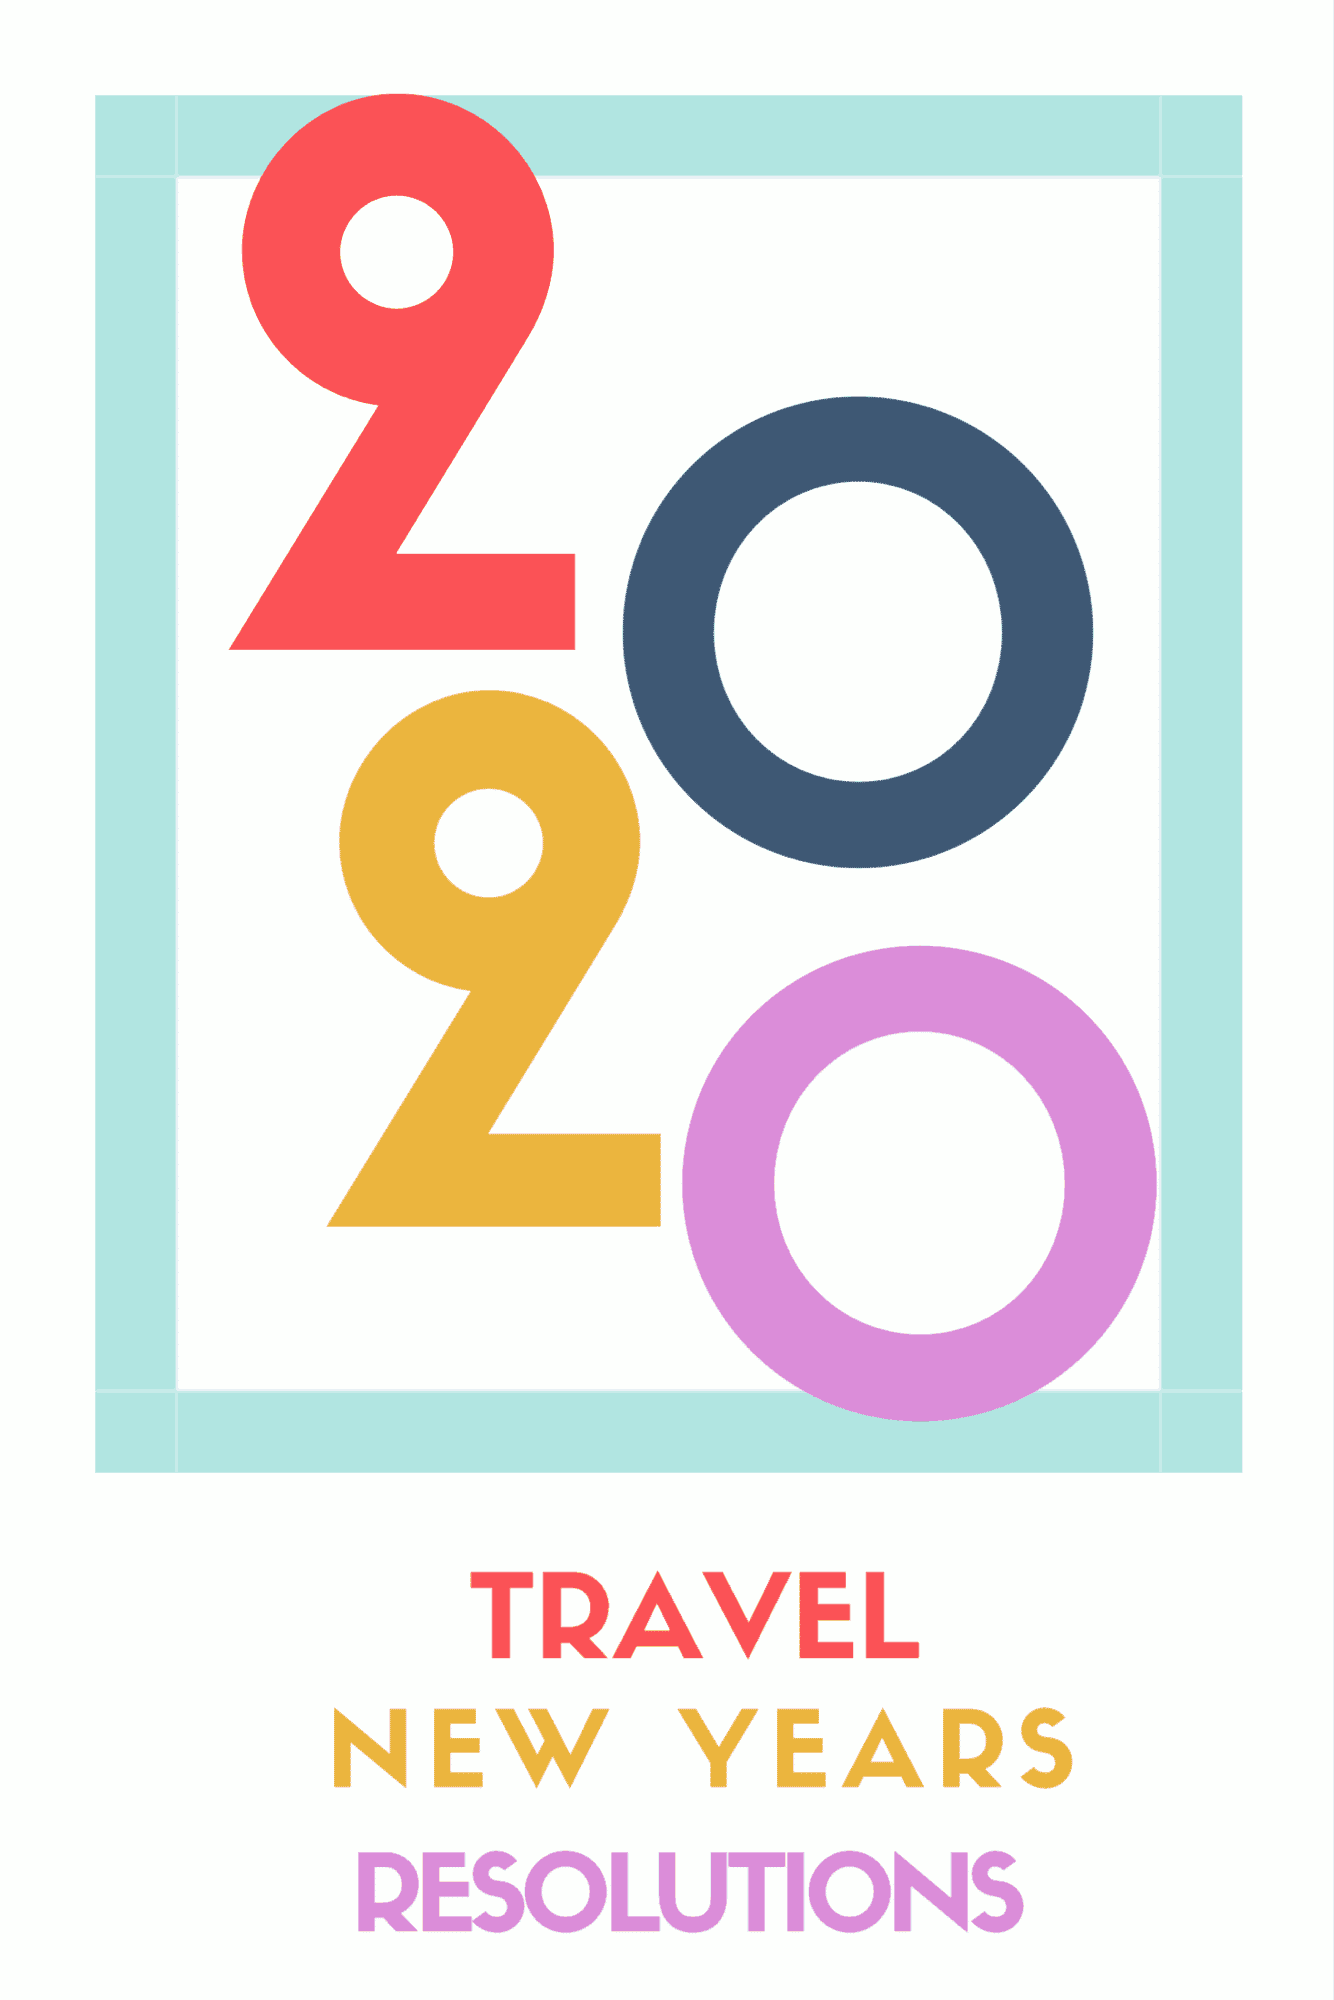 Travel New Years Resolutions